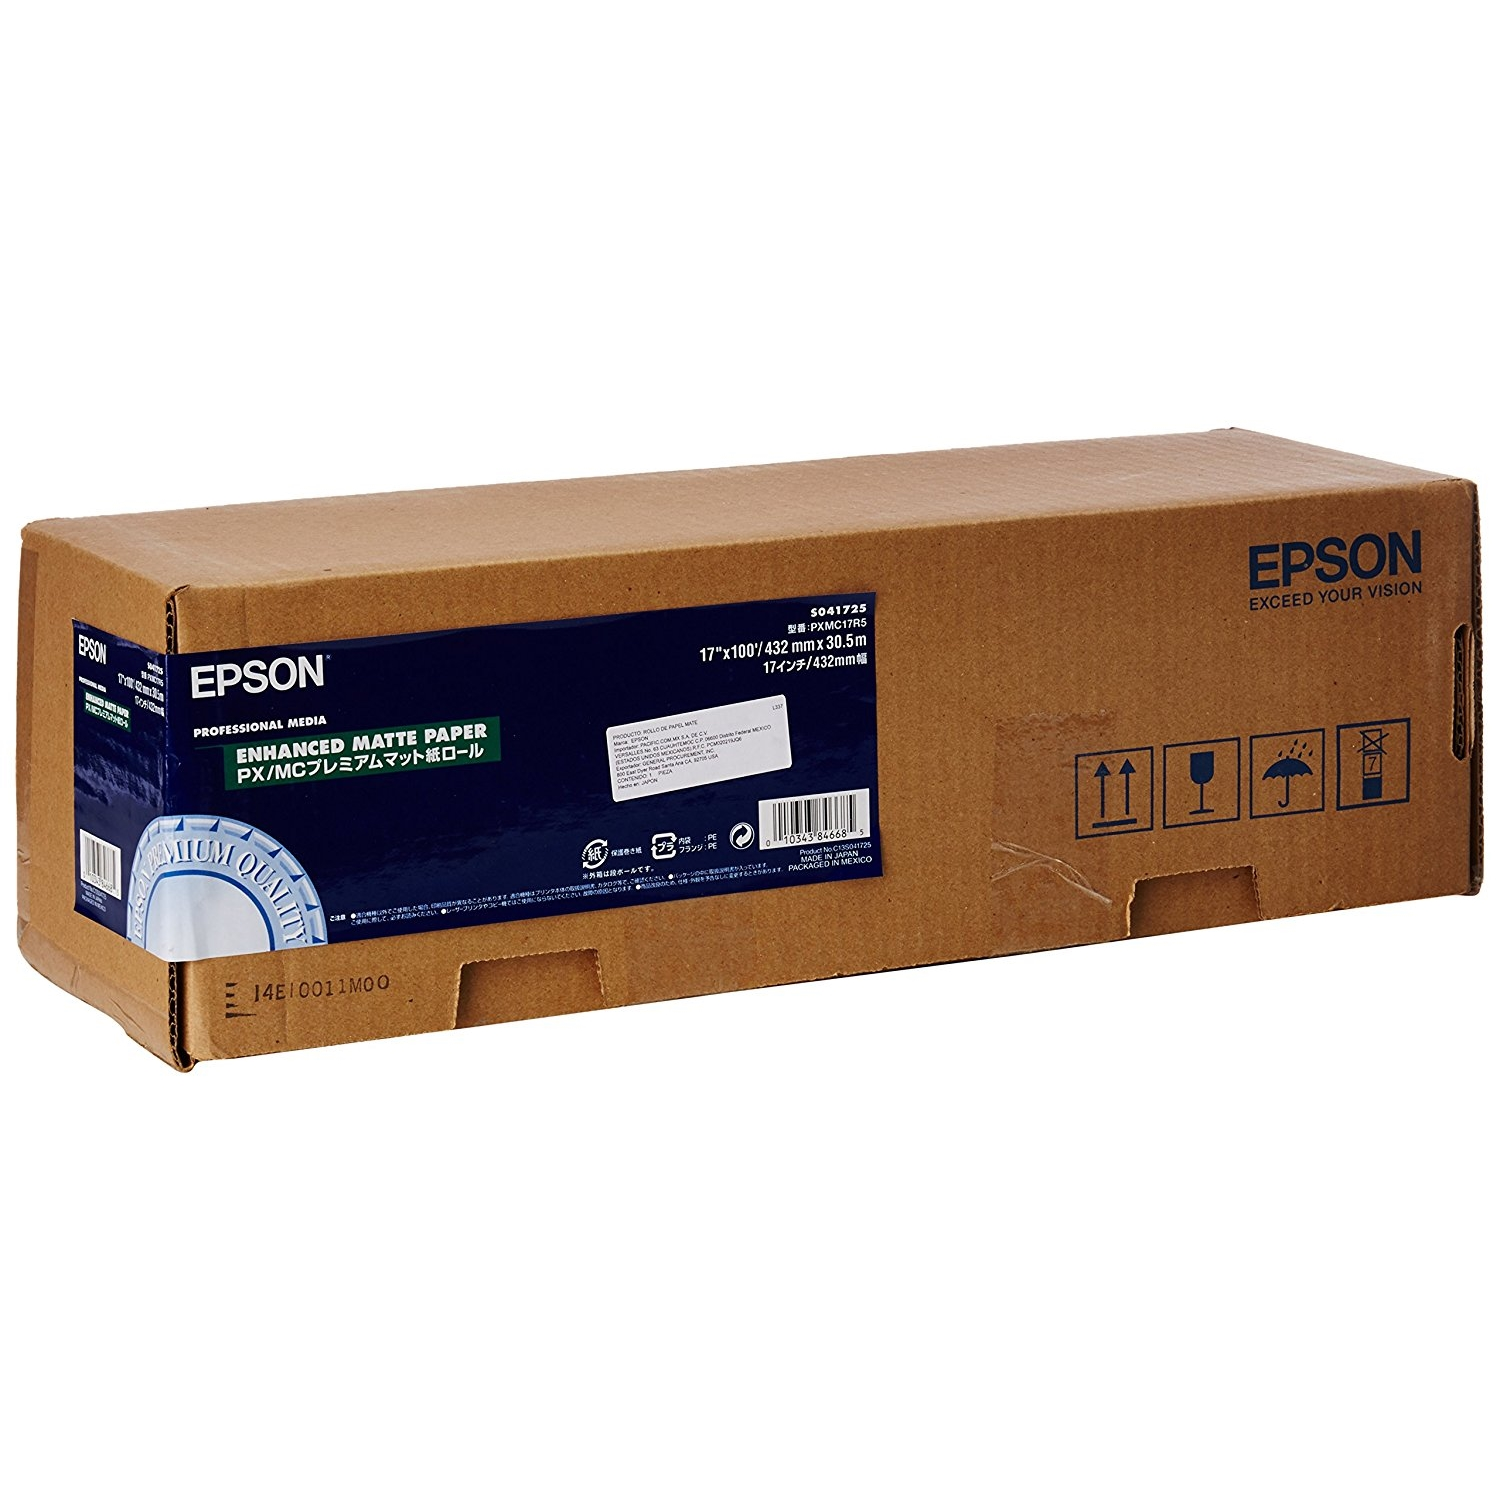 Original Epson S041725 189gsm 17in x 100ft Paper Roll (C13S041725)